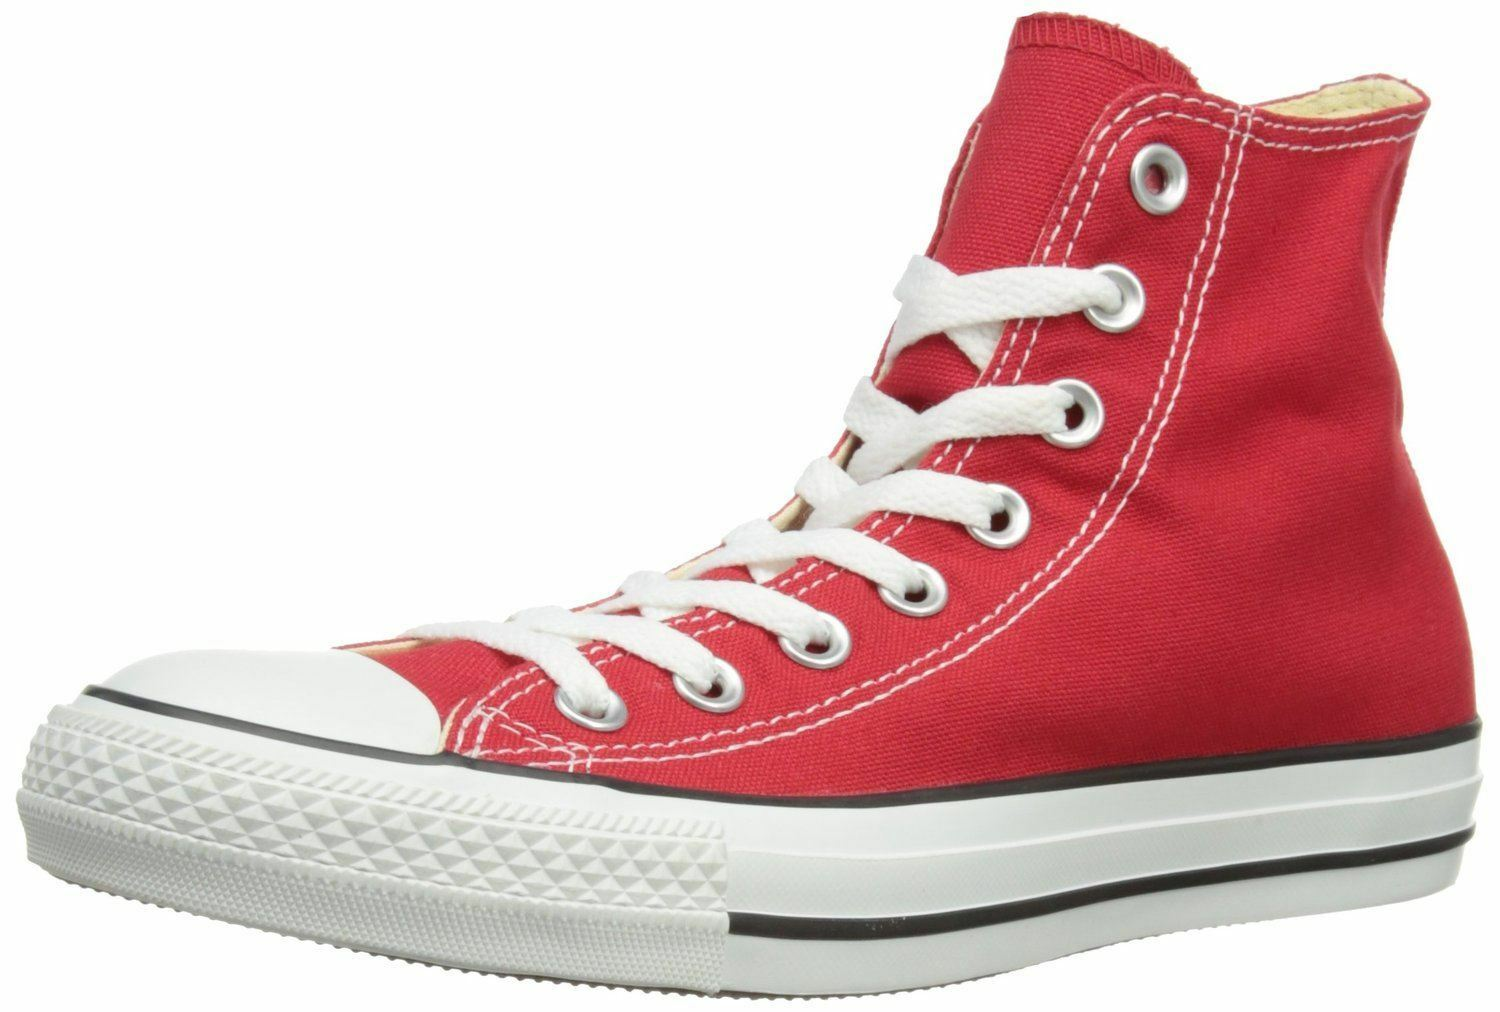 Converse Chuck Taylor All Star Rot Weiß Hi Unisex Sneakers Stiefel